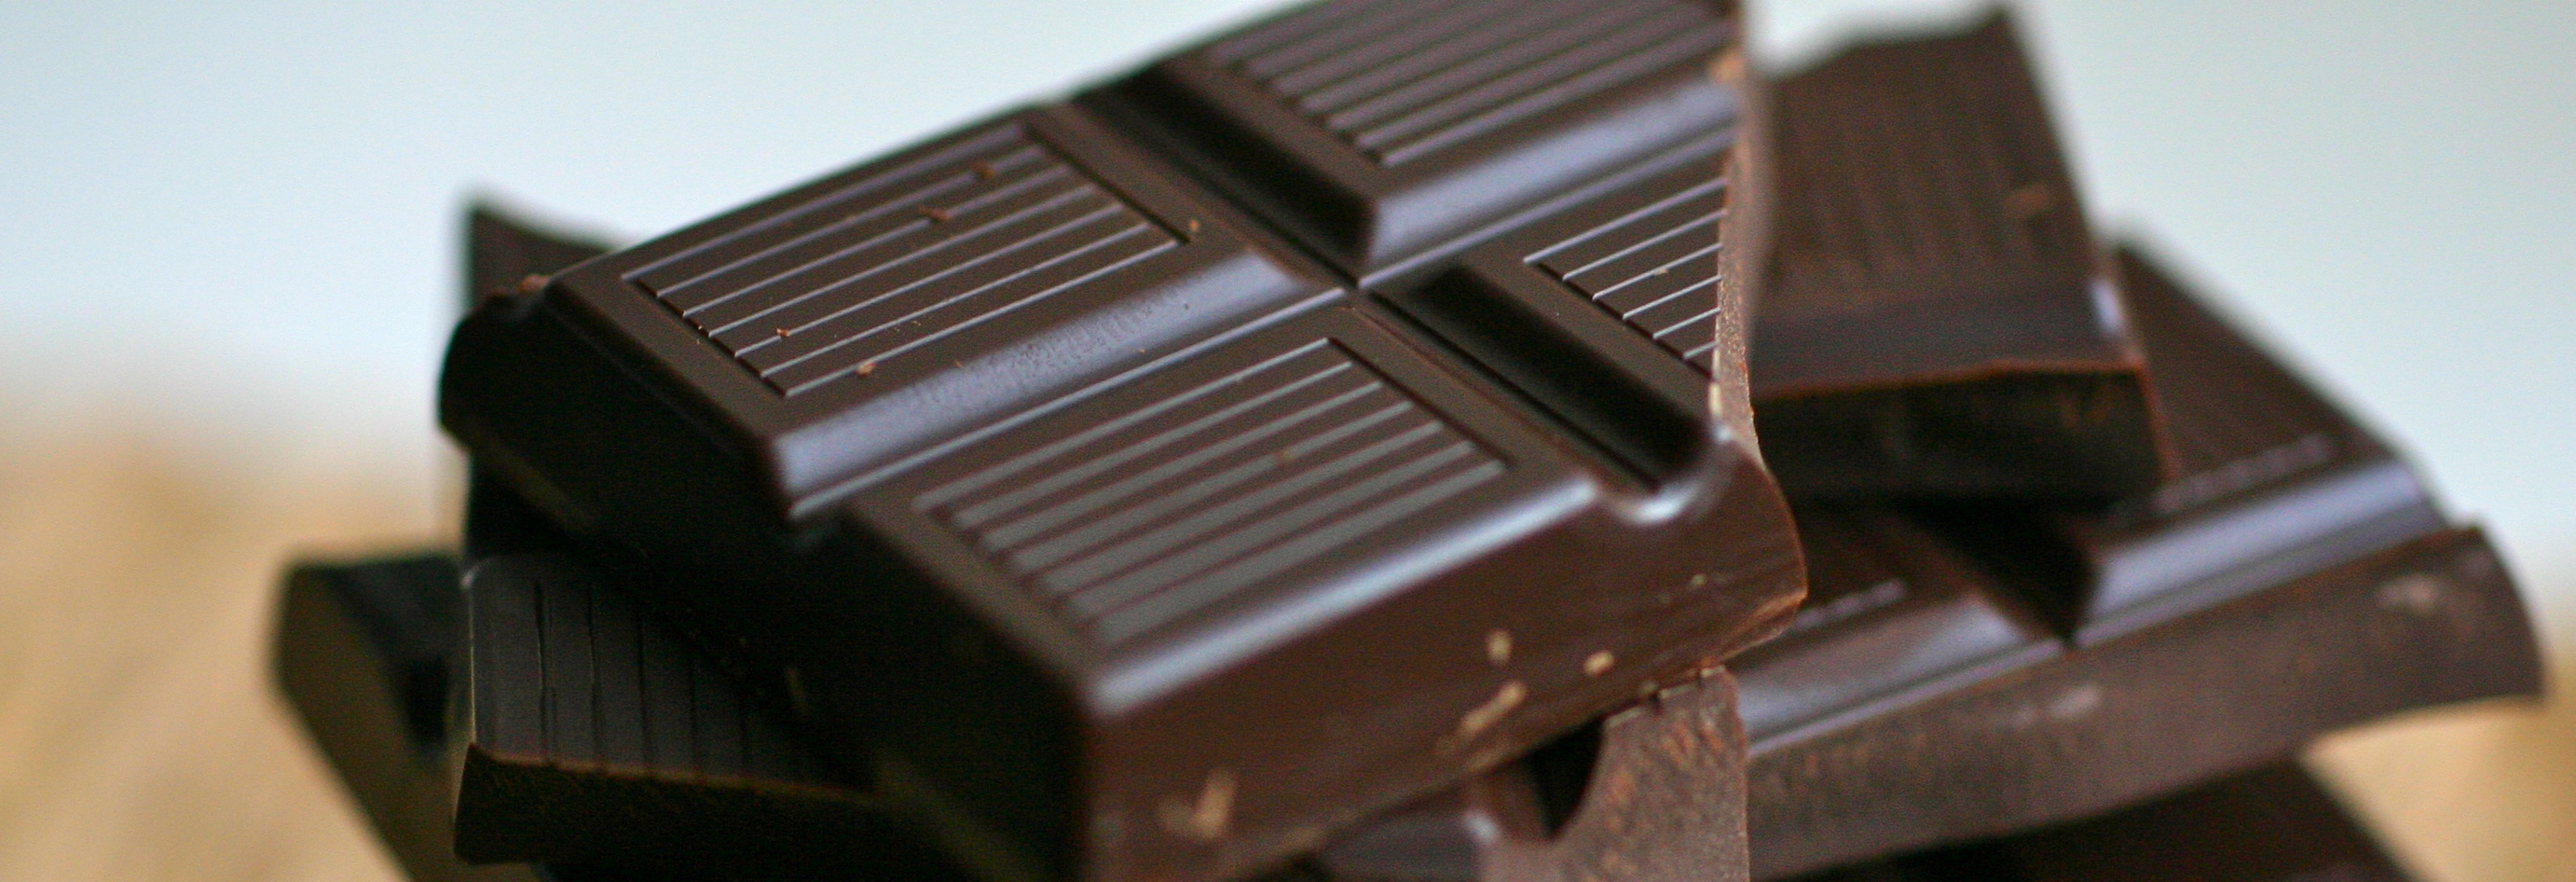 Chocolate-Good-For-Sex-And-Health-02